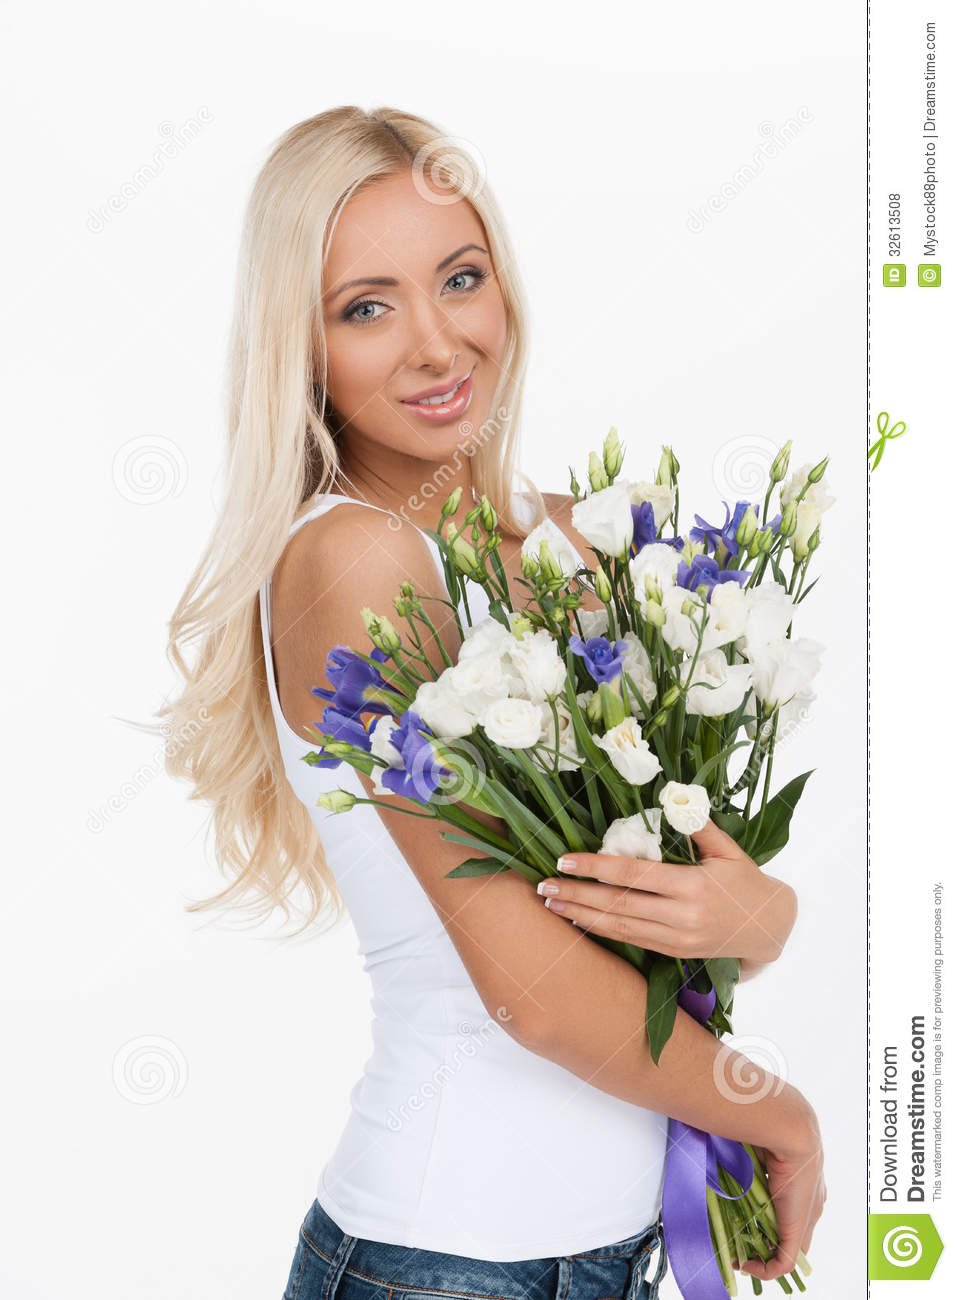 Beautiful women with flowers royalty free stock photos image attractive beautiful flowers holding smiling standing white woman dhlflorist Gallery